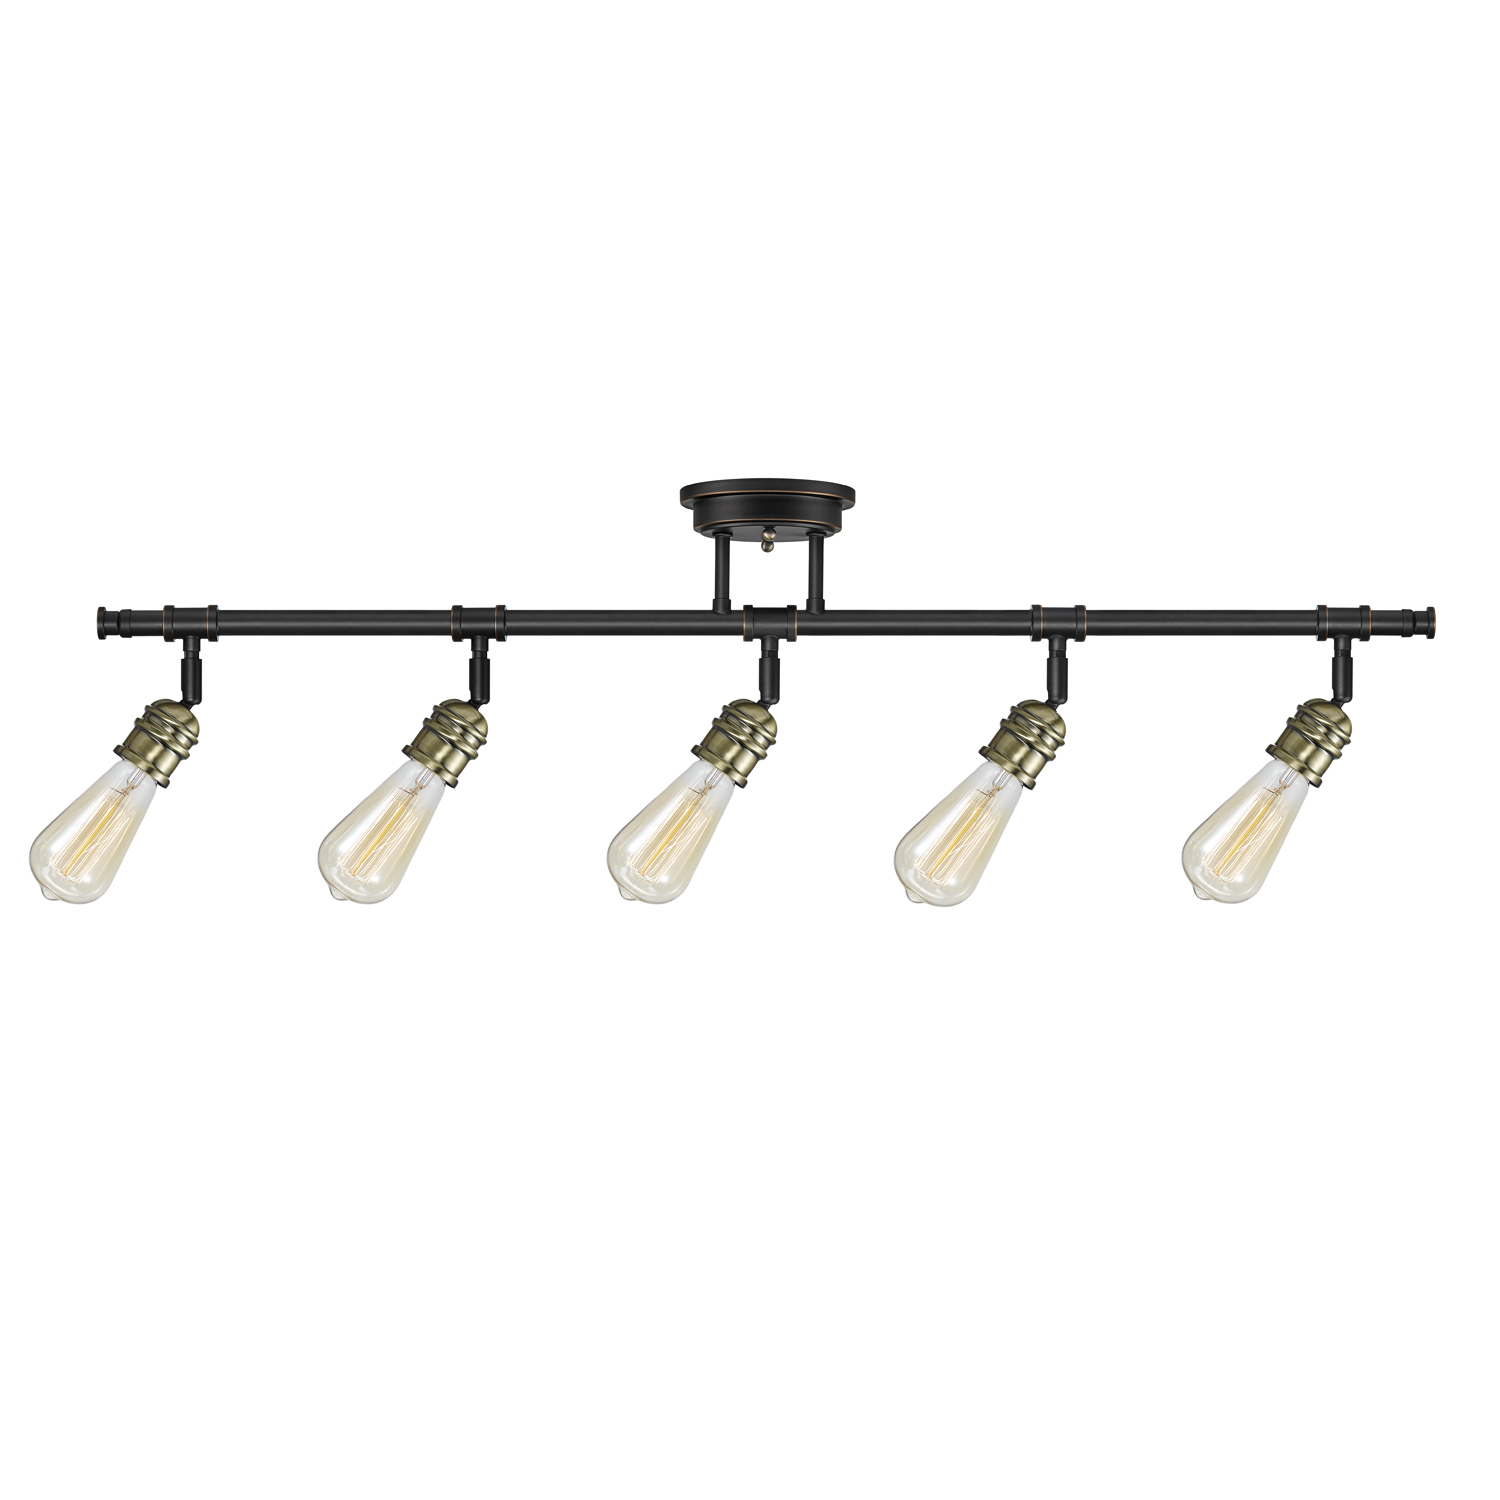 Globe Electric Rennes 5-Light Oil Rubbed Bronze Track Lighting, Bulbs Included, 59328 by Globe Electric